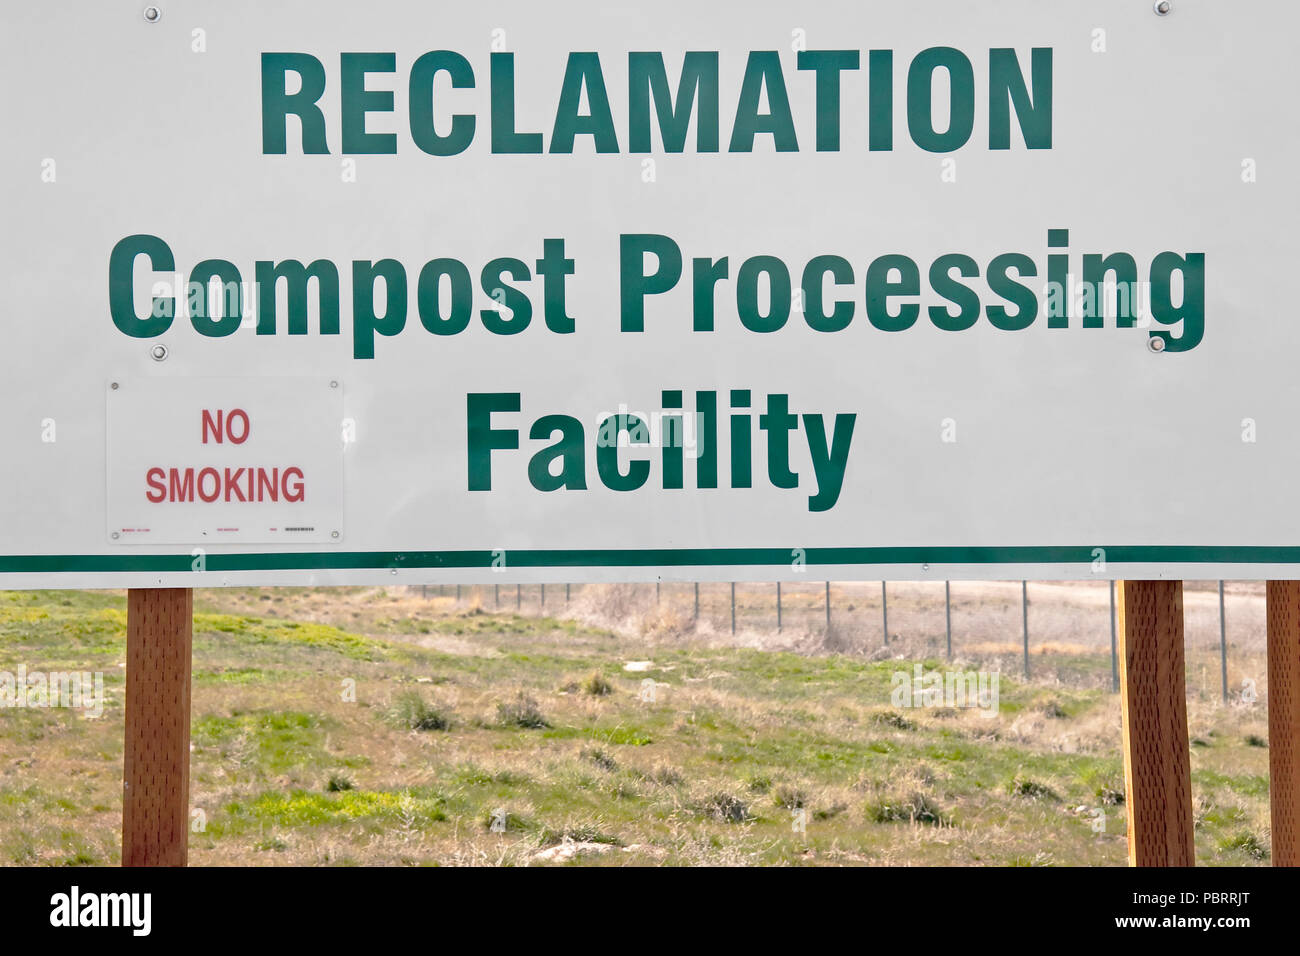 A sign indicating a Reclamation Compost Processing program at the Salt Lake City Landfill in Utah, USA. The landfill is doing its' part to help our en - Stock Image